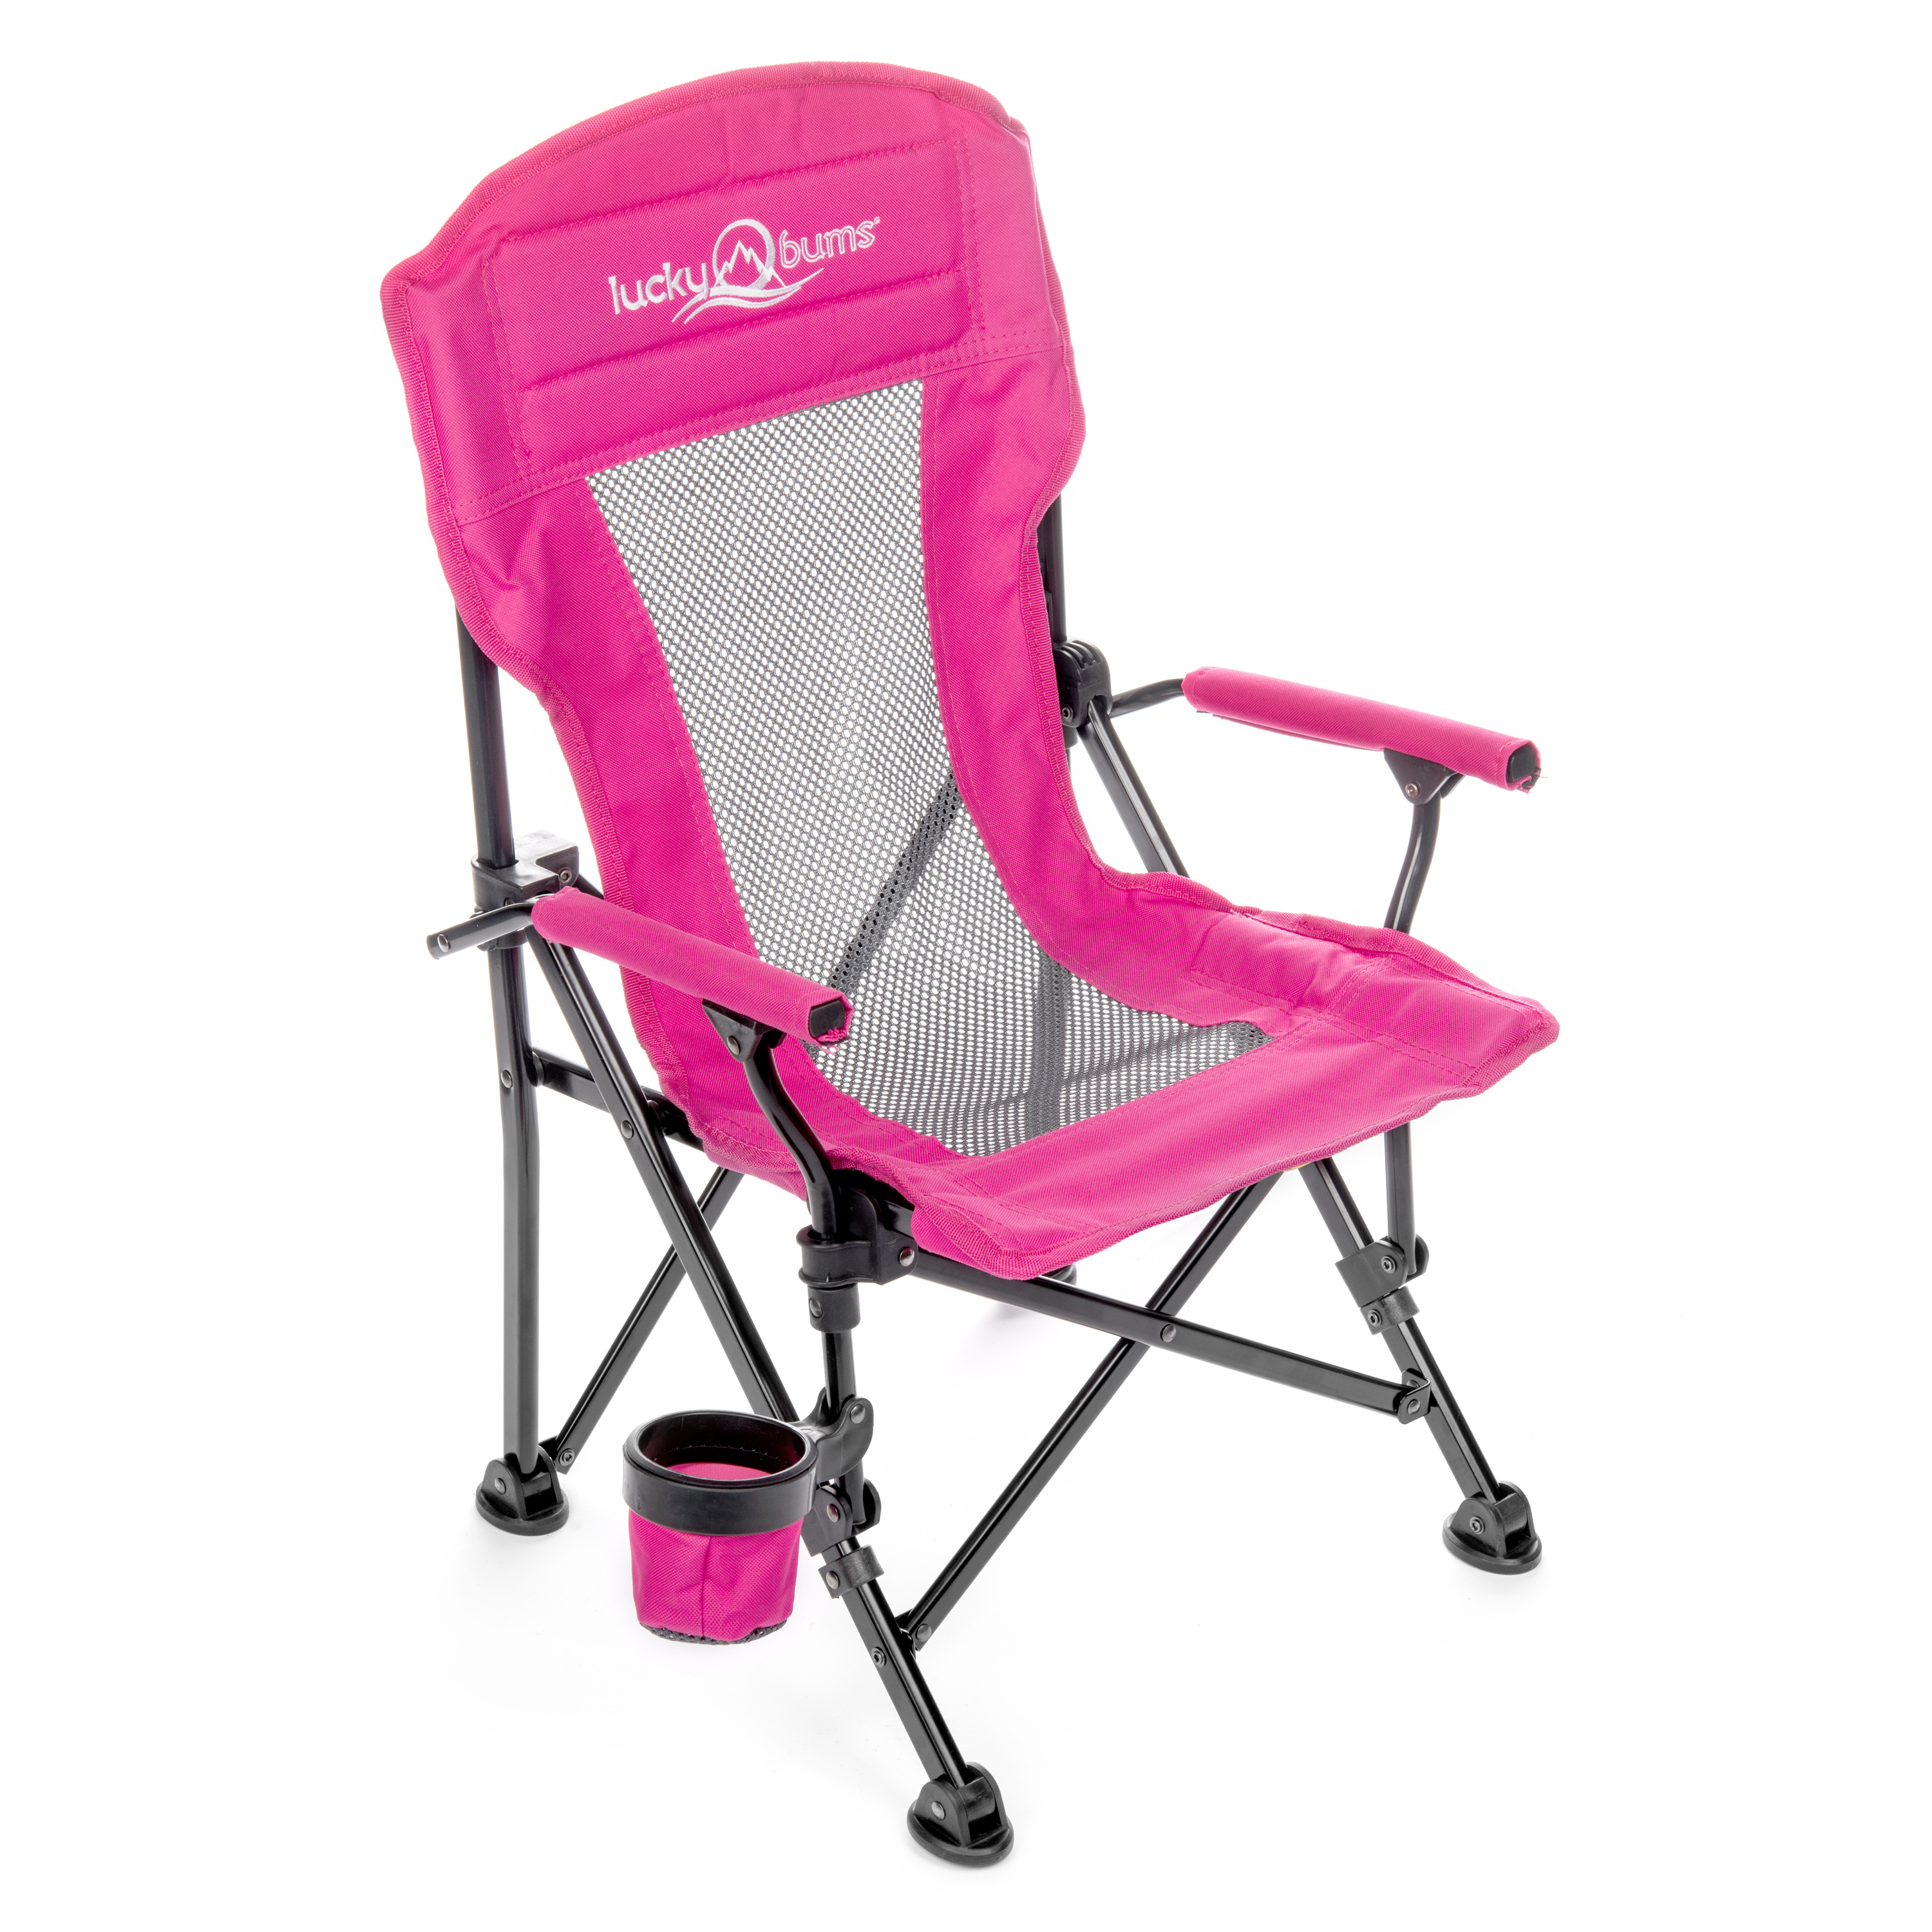 lucky bums youth folding arm chair with cup holder, navy, medium